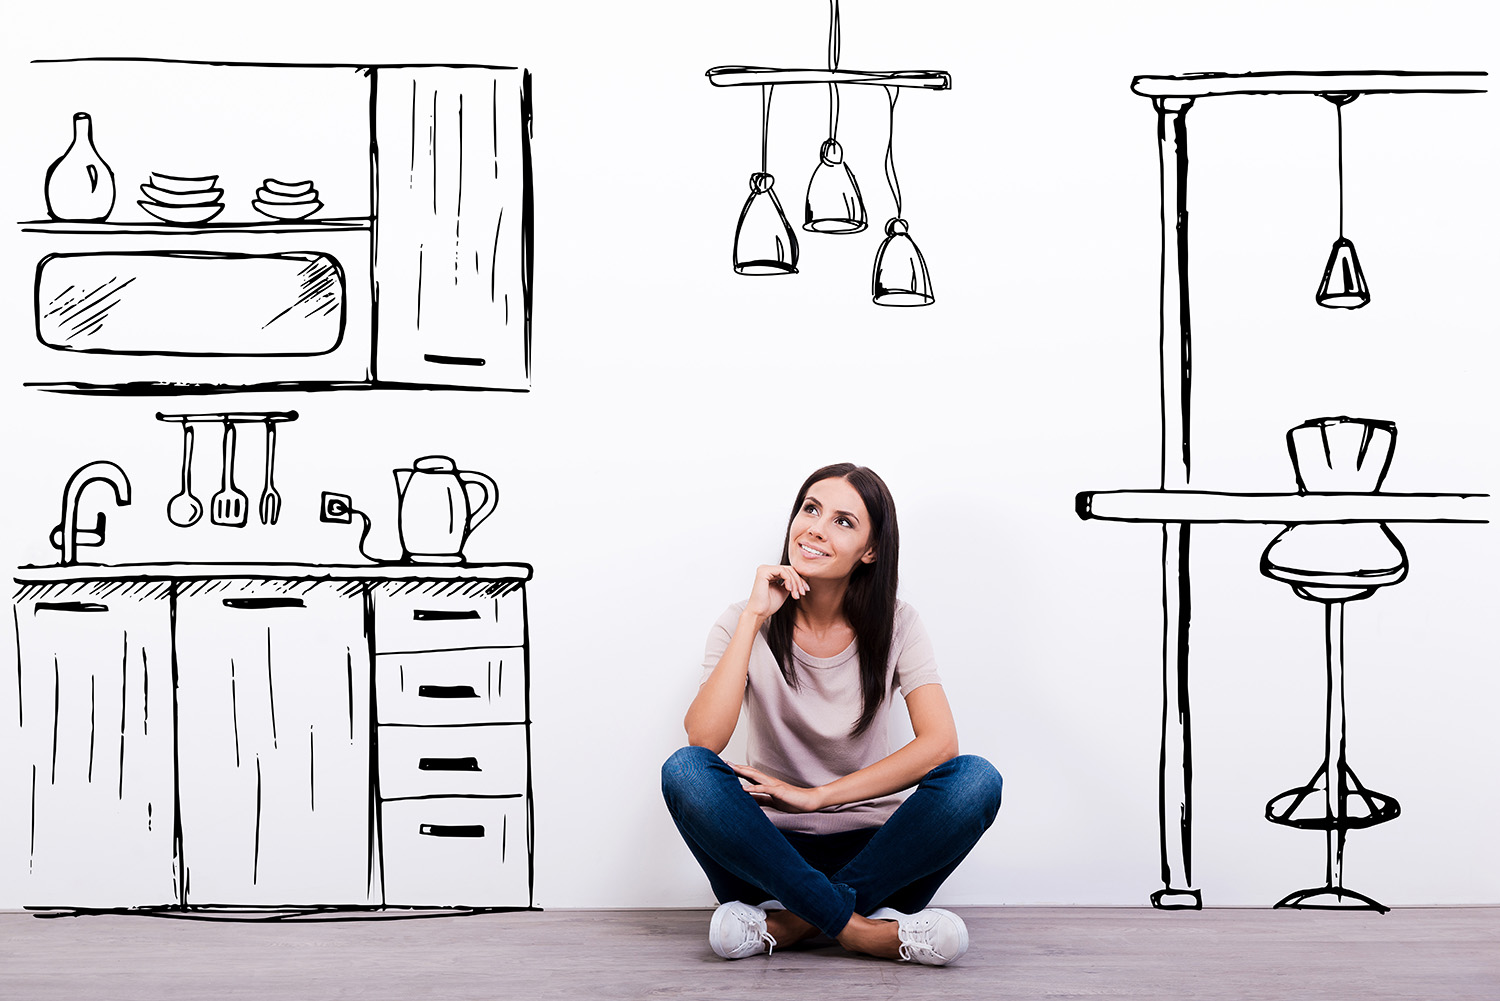 woman dreaming about her kitchen remodel